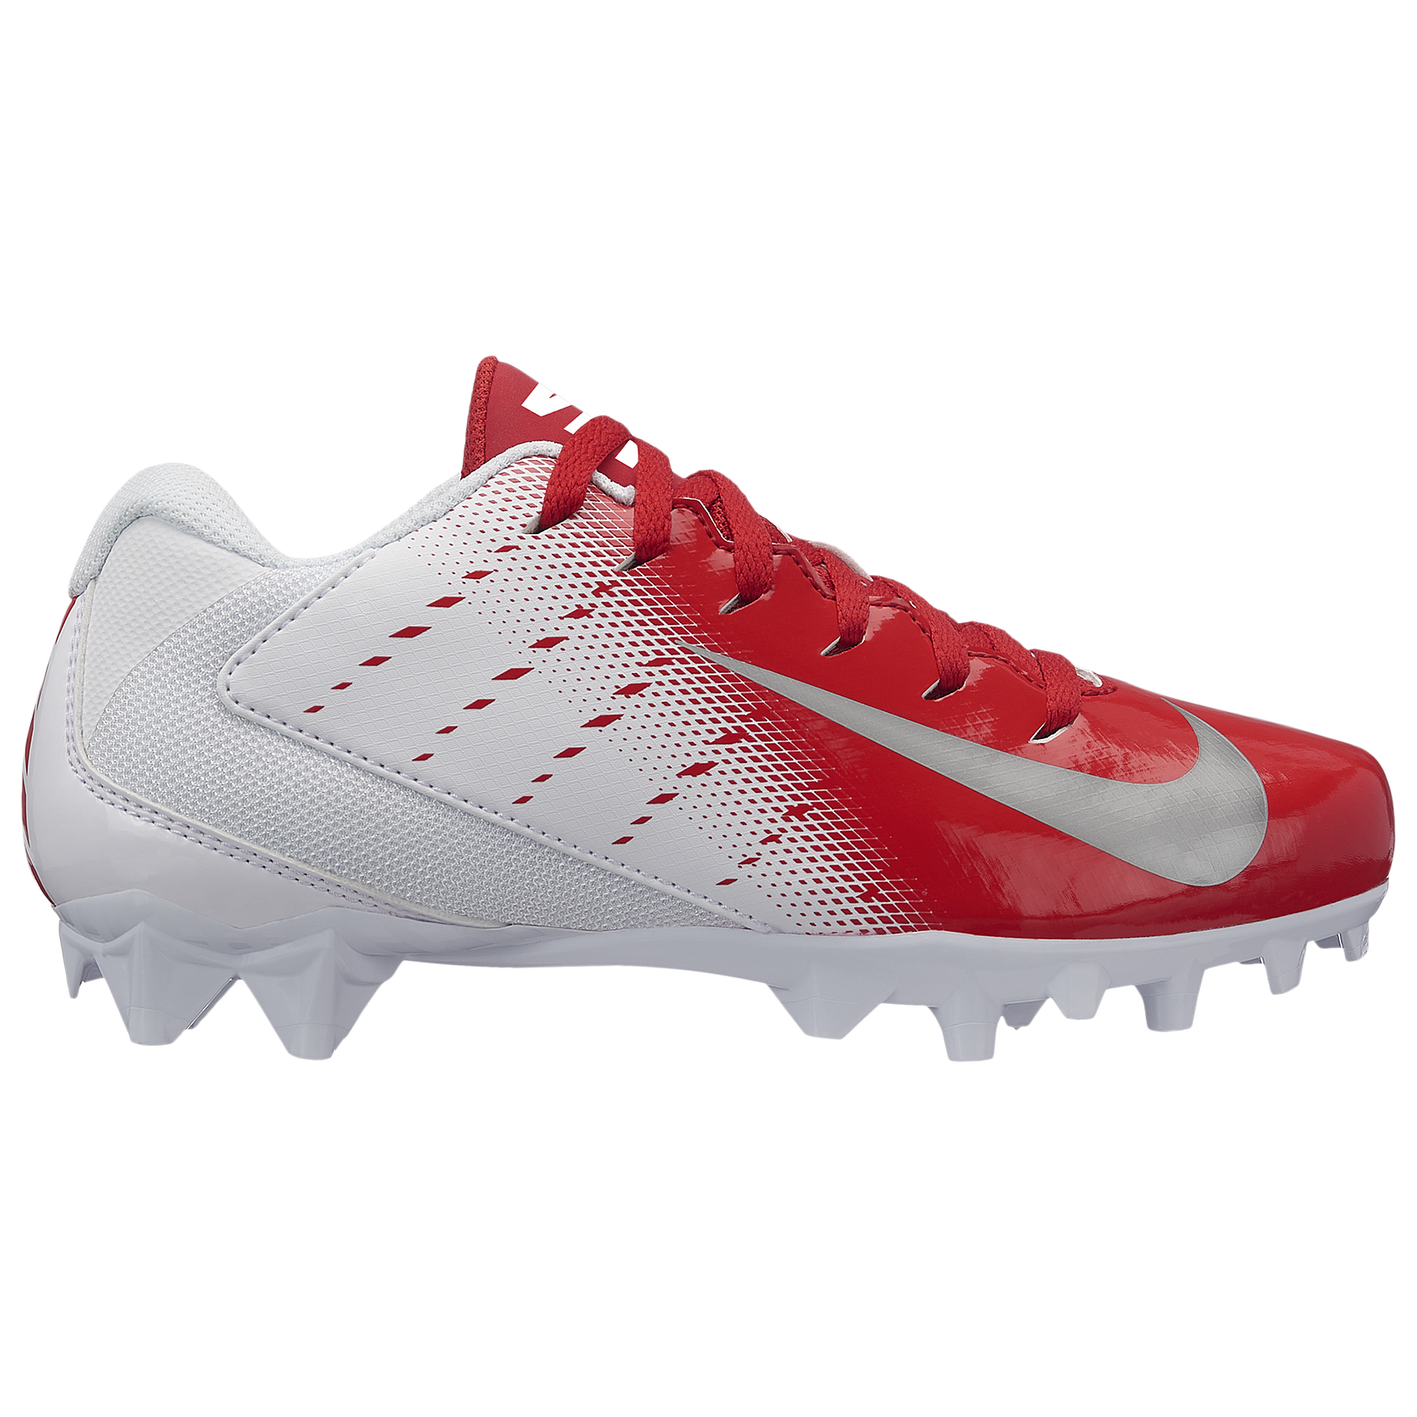 105fc3e7ae1d Nike Vapor Varsity 3 BG - Boys' Grade School - Football - Shoes ...